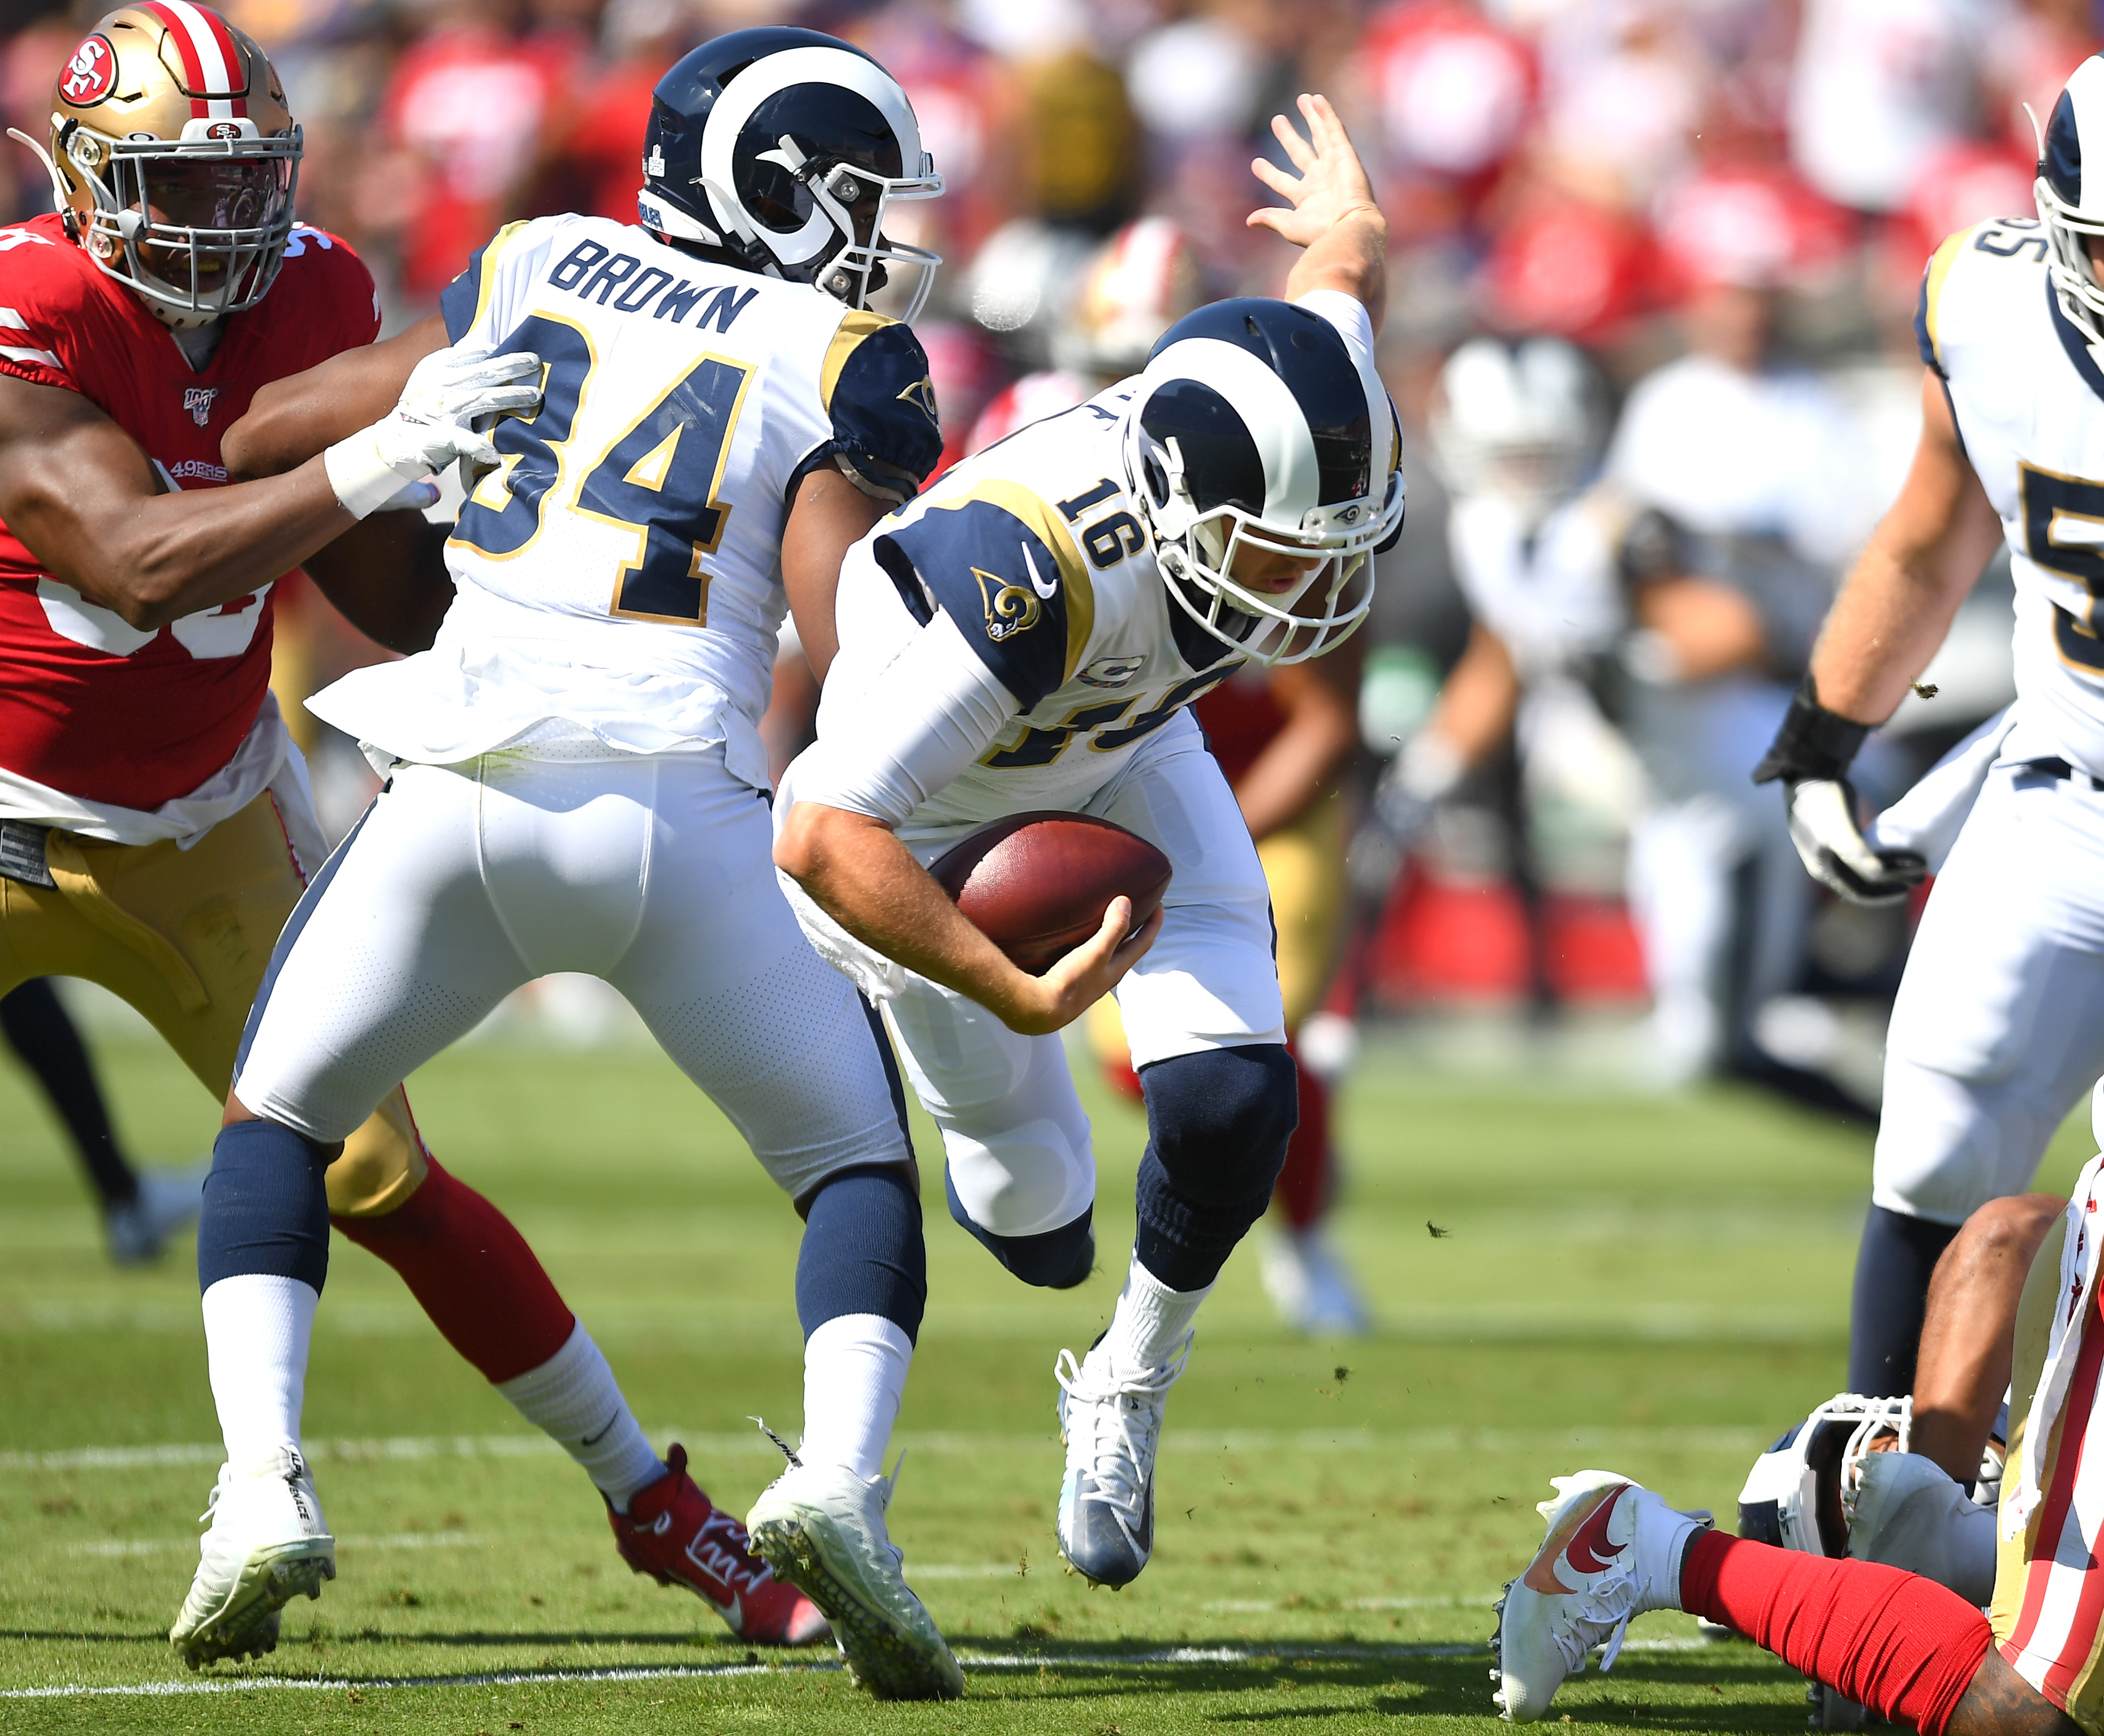 Los Angeles Rams QB trips trying to escape the San Francisco 49ers' defense in Week 6, Oct. 13, 2019.